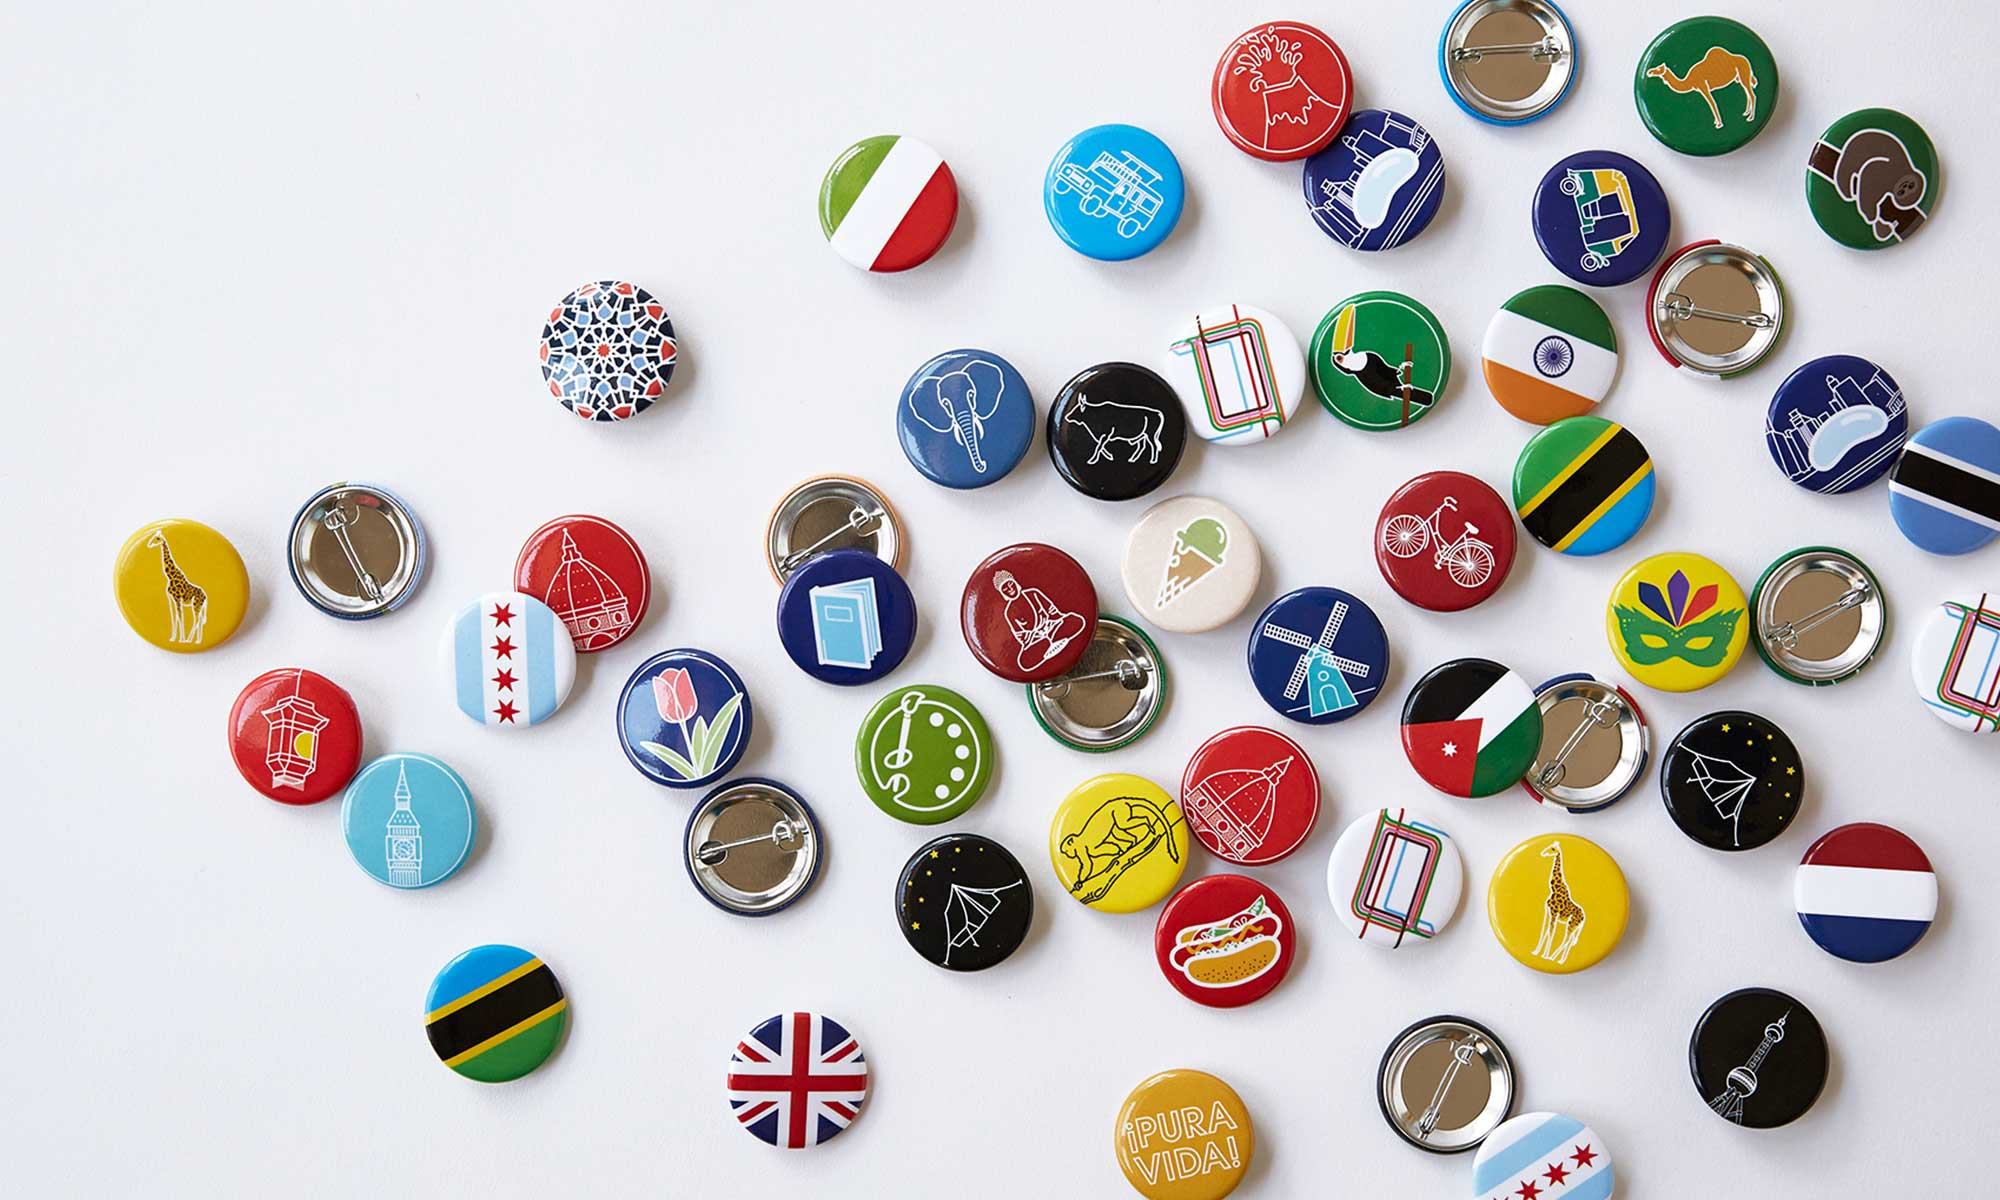 Illustrated buttons viewed from above